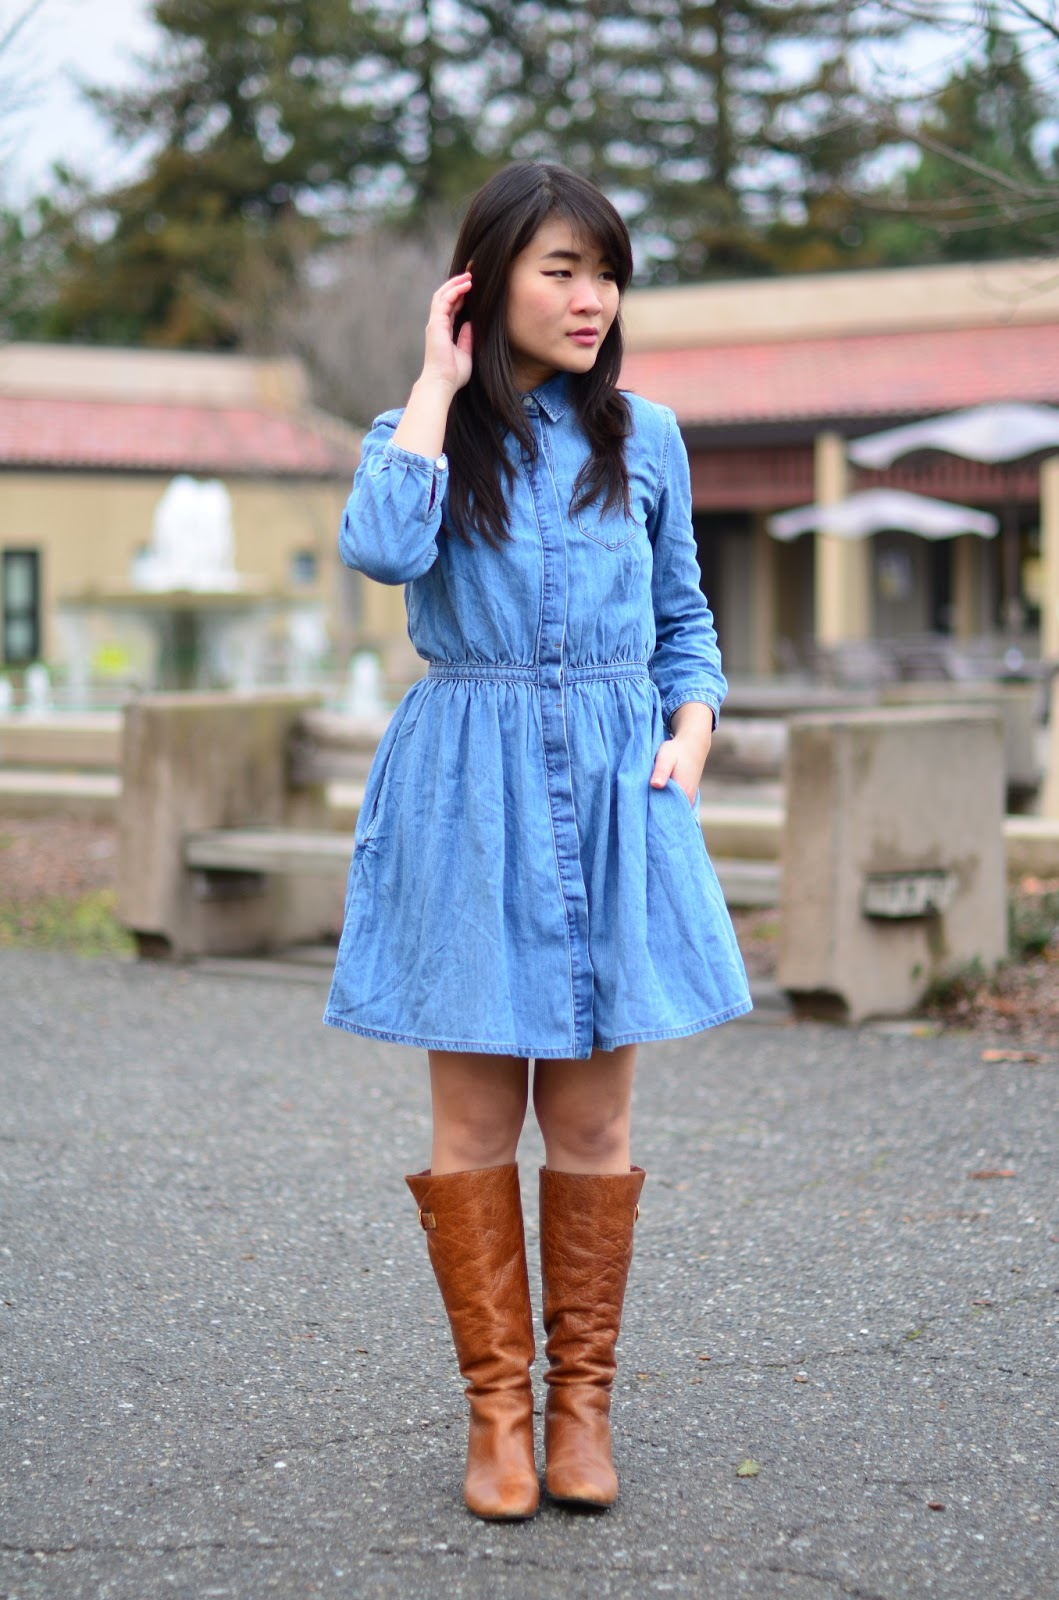 madewell polka dot scarf, brown leather jacket, denim dress, chambray dress, brown boots, how to wear a denim dress, how to wear a chambray dress